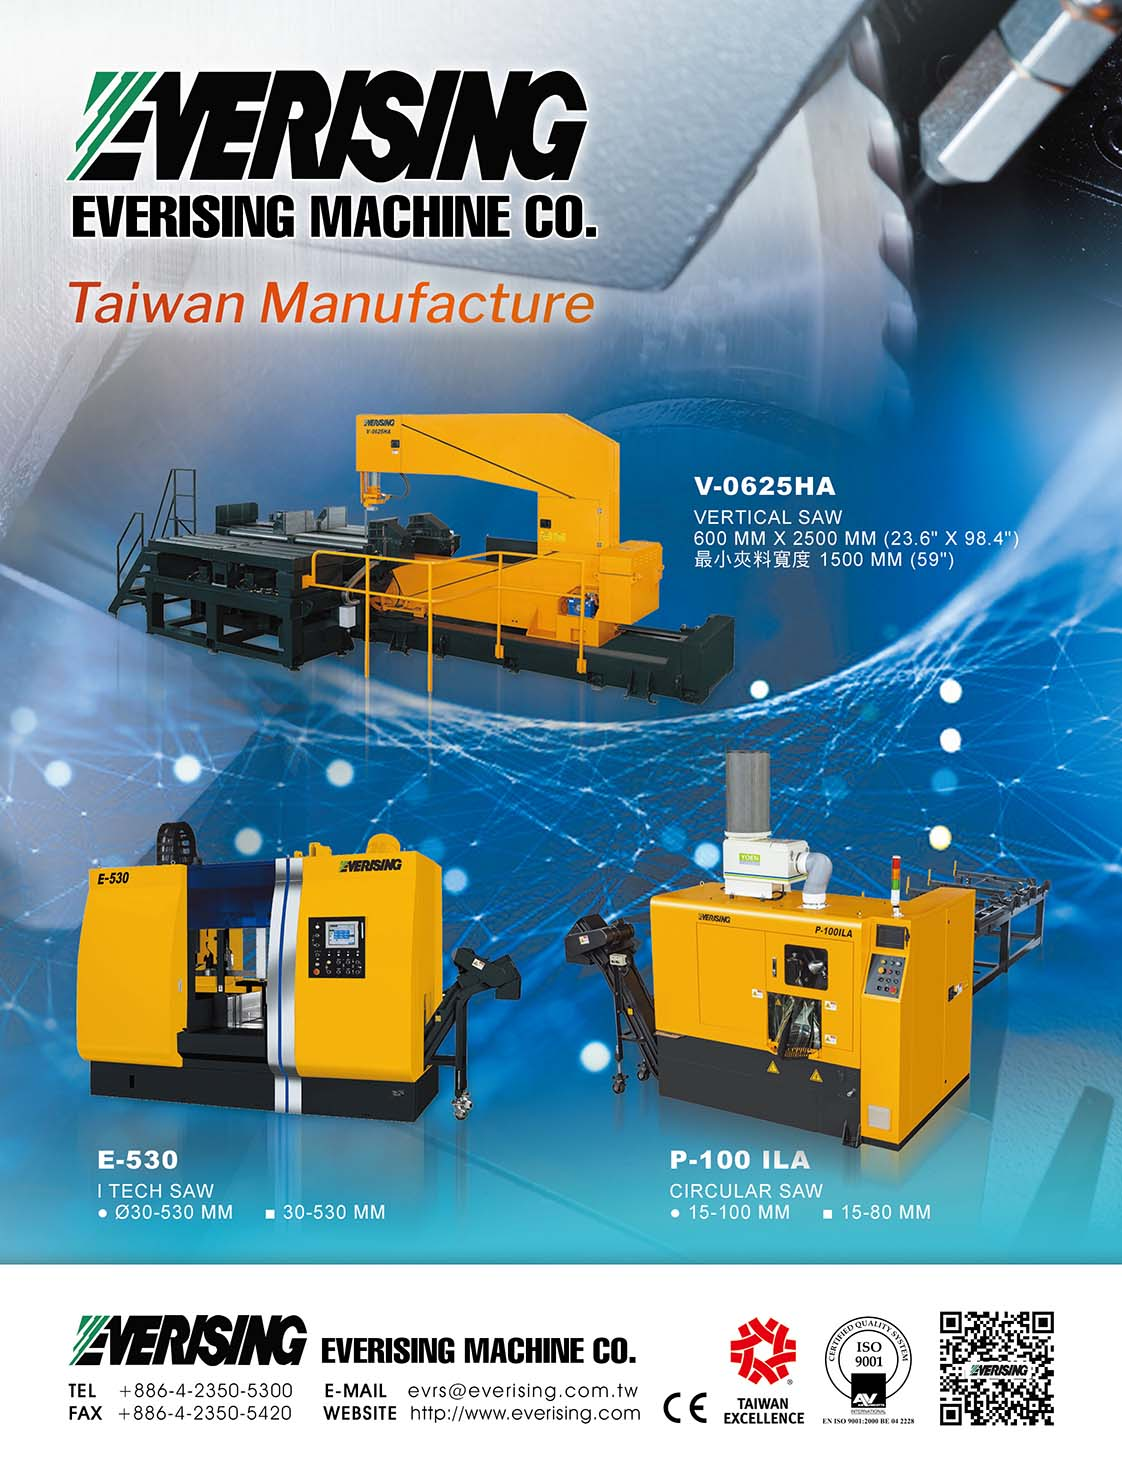 EVERISING MACHINE CO.